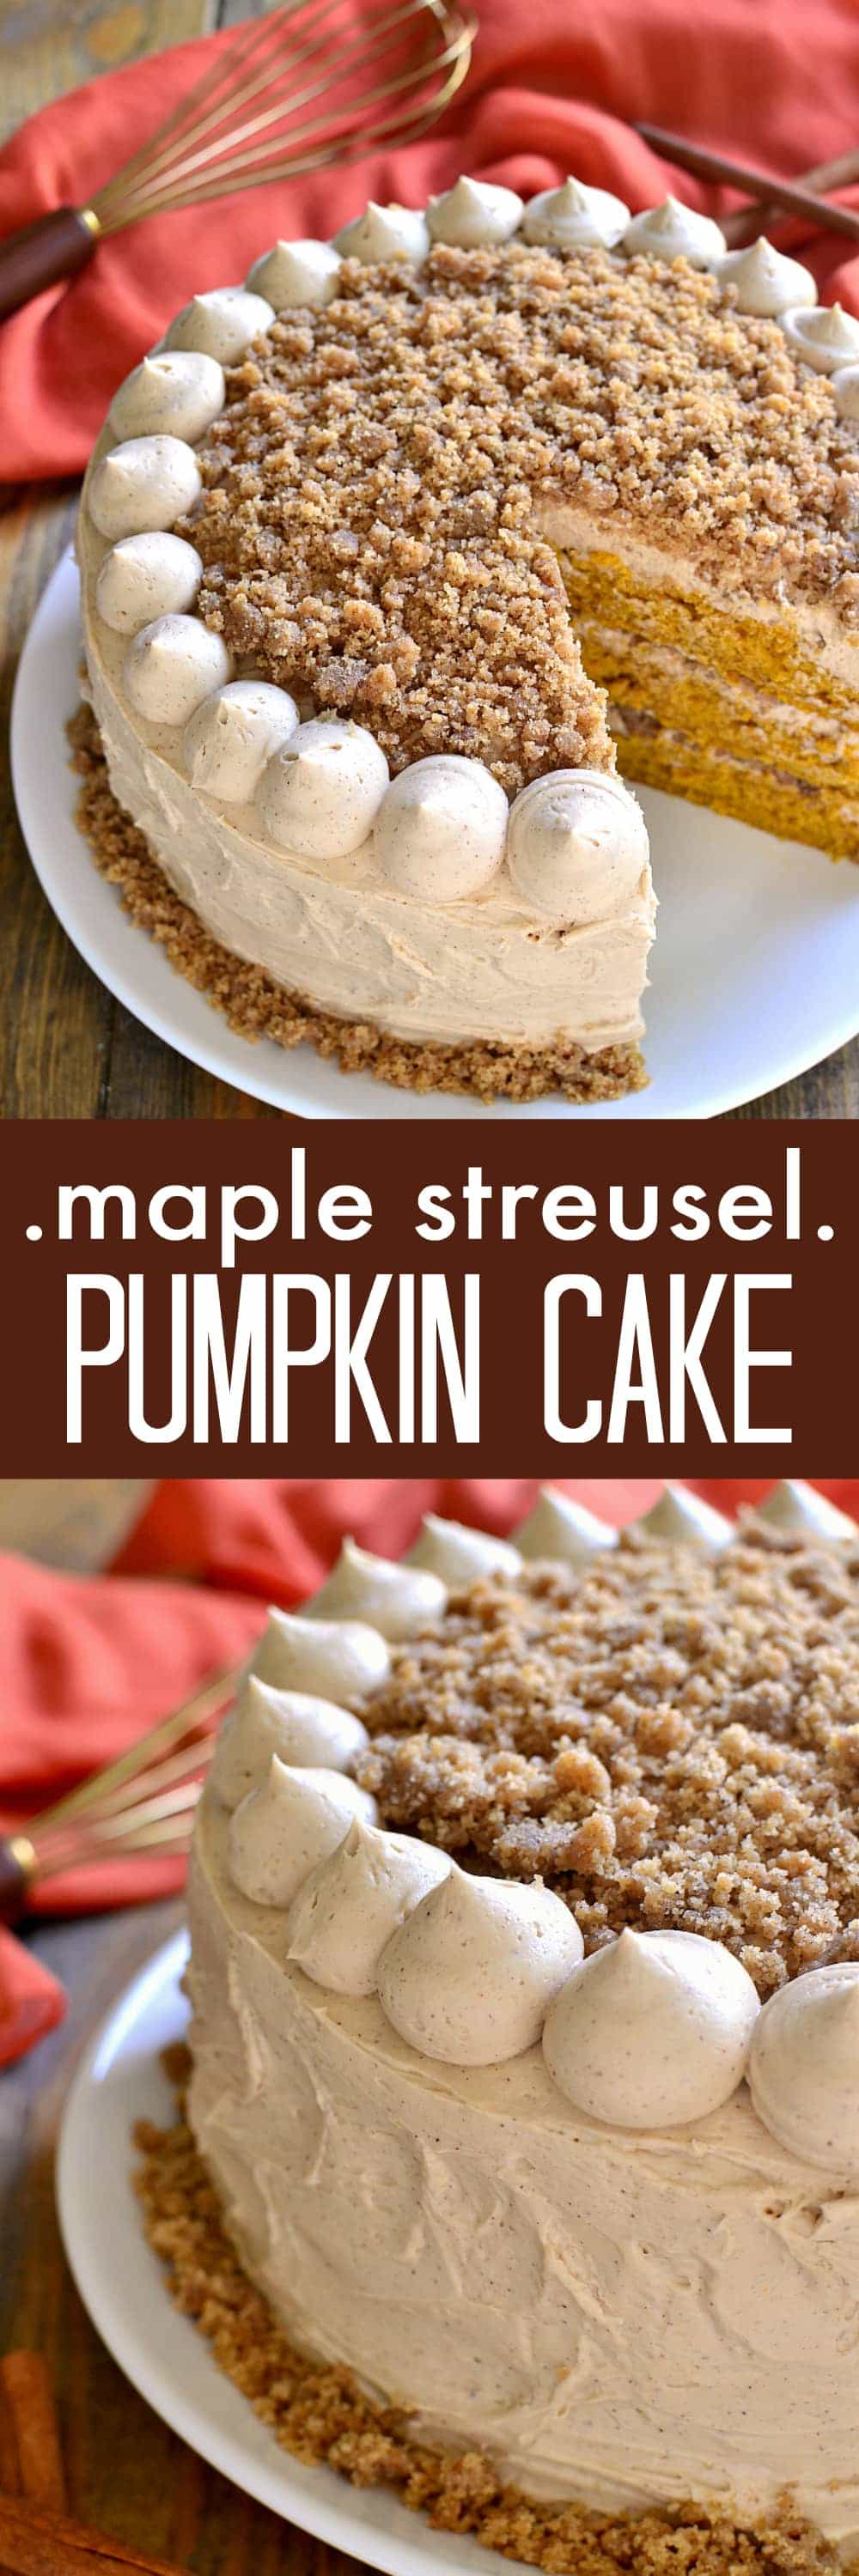 cake maple pumpkin tart maple pumpkin cheese cake maple walnut pumpkin ...